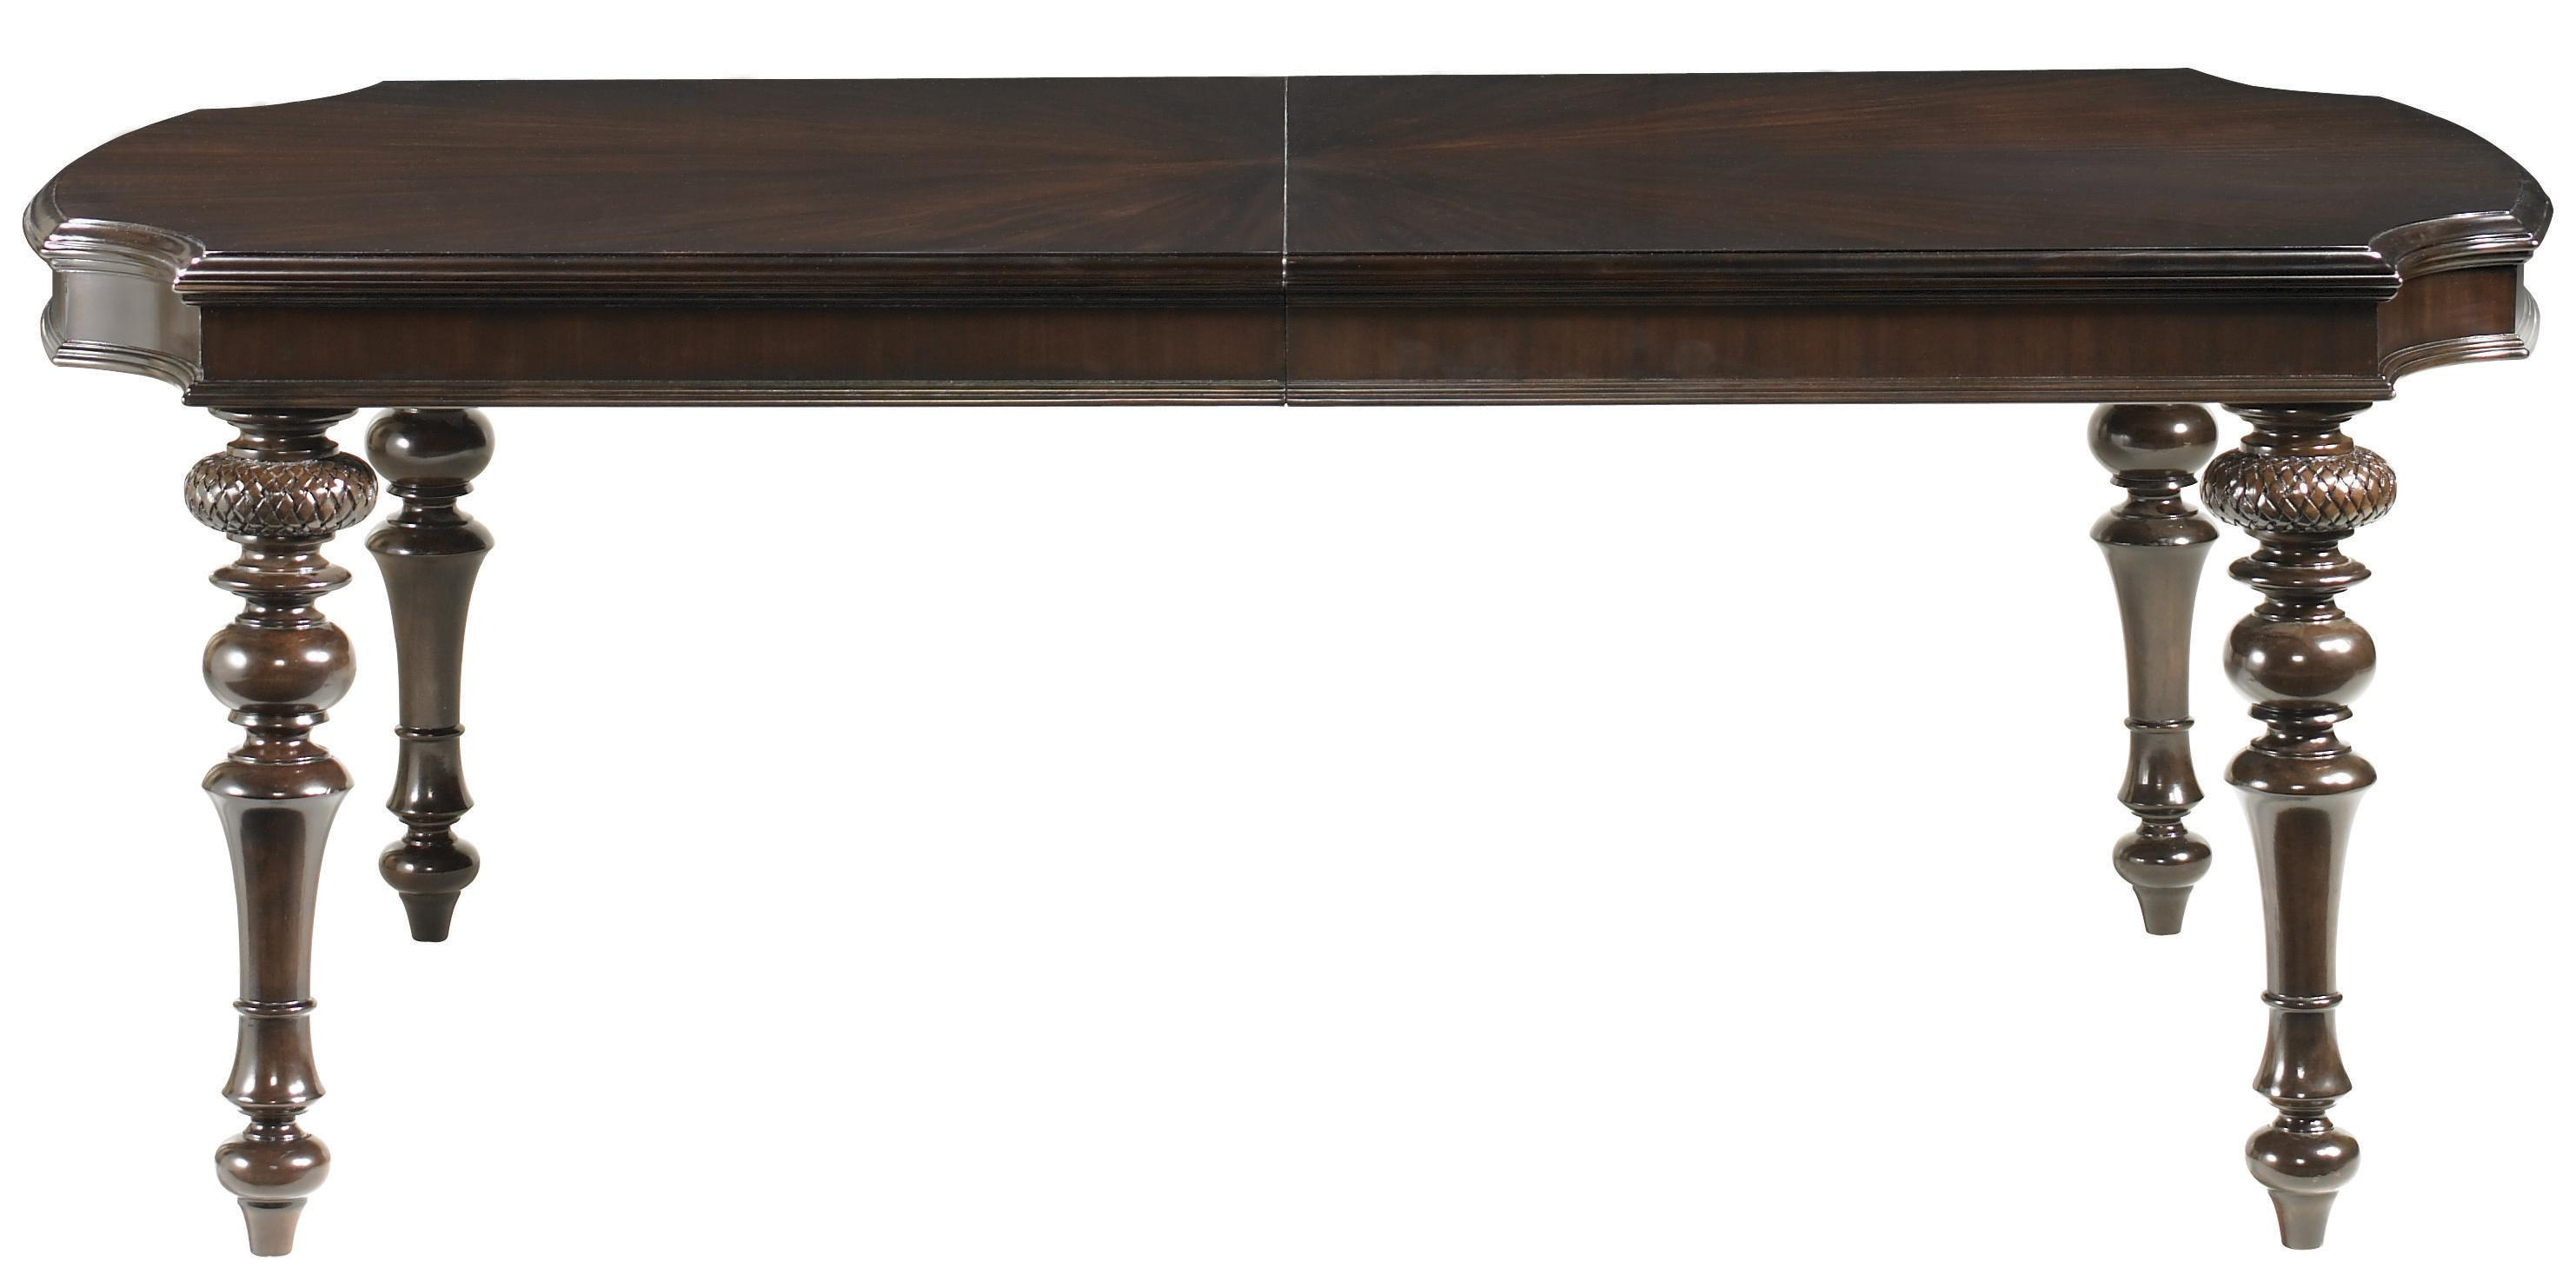 Royal Kahala Islands Edge Dining Table by Tommy Bahama Home at Baer's Furniture